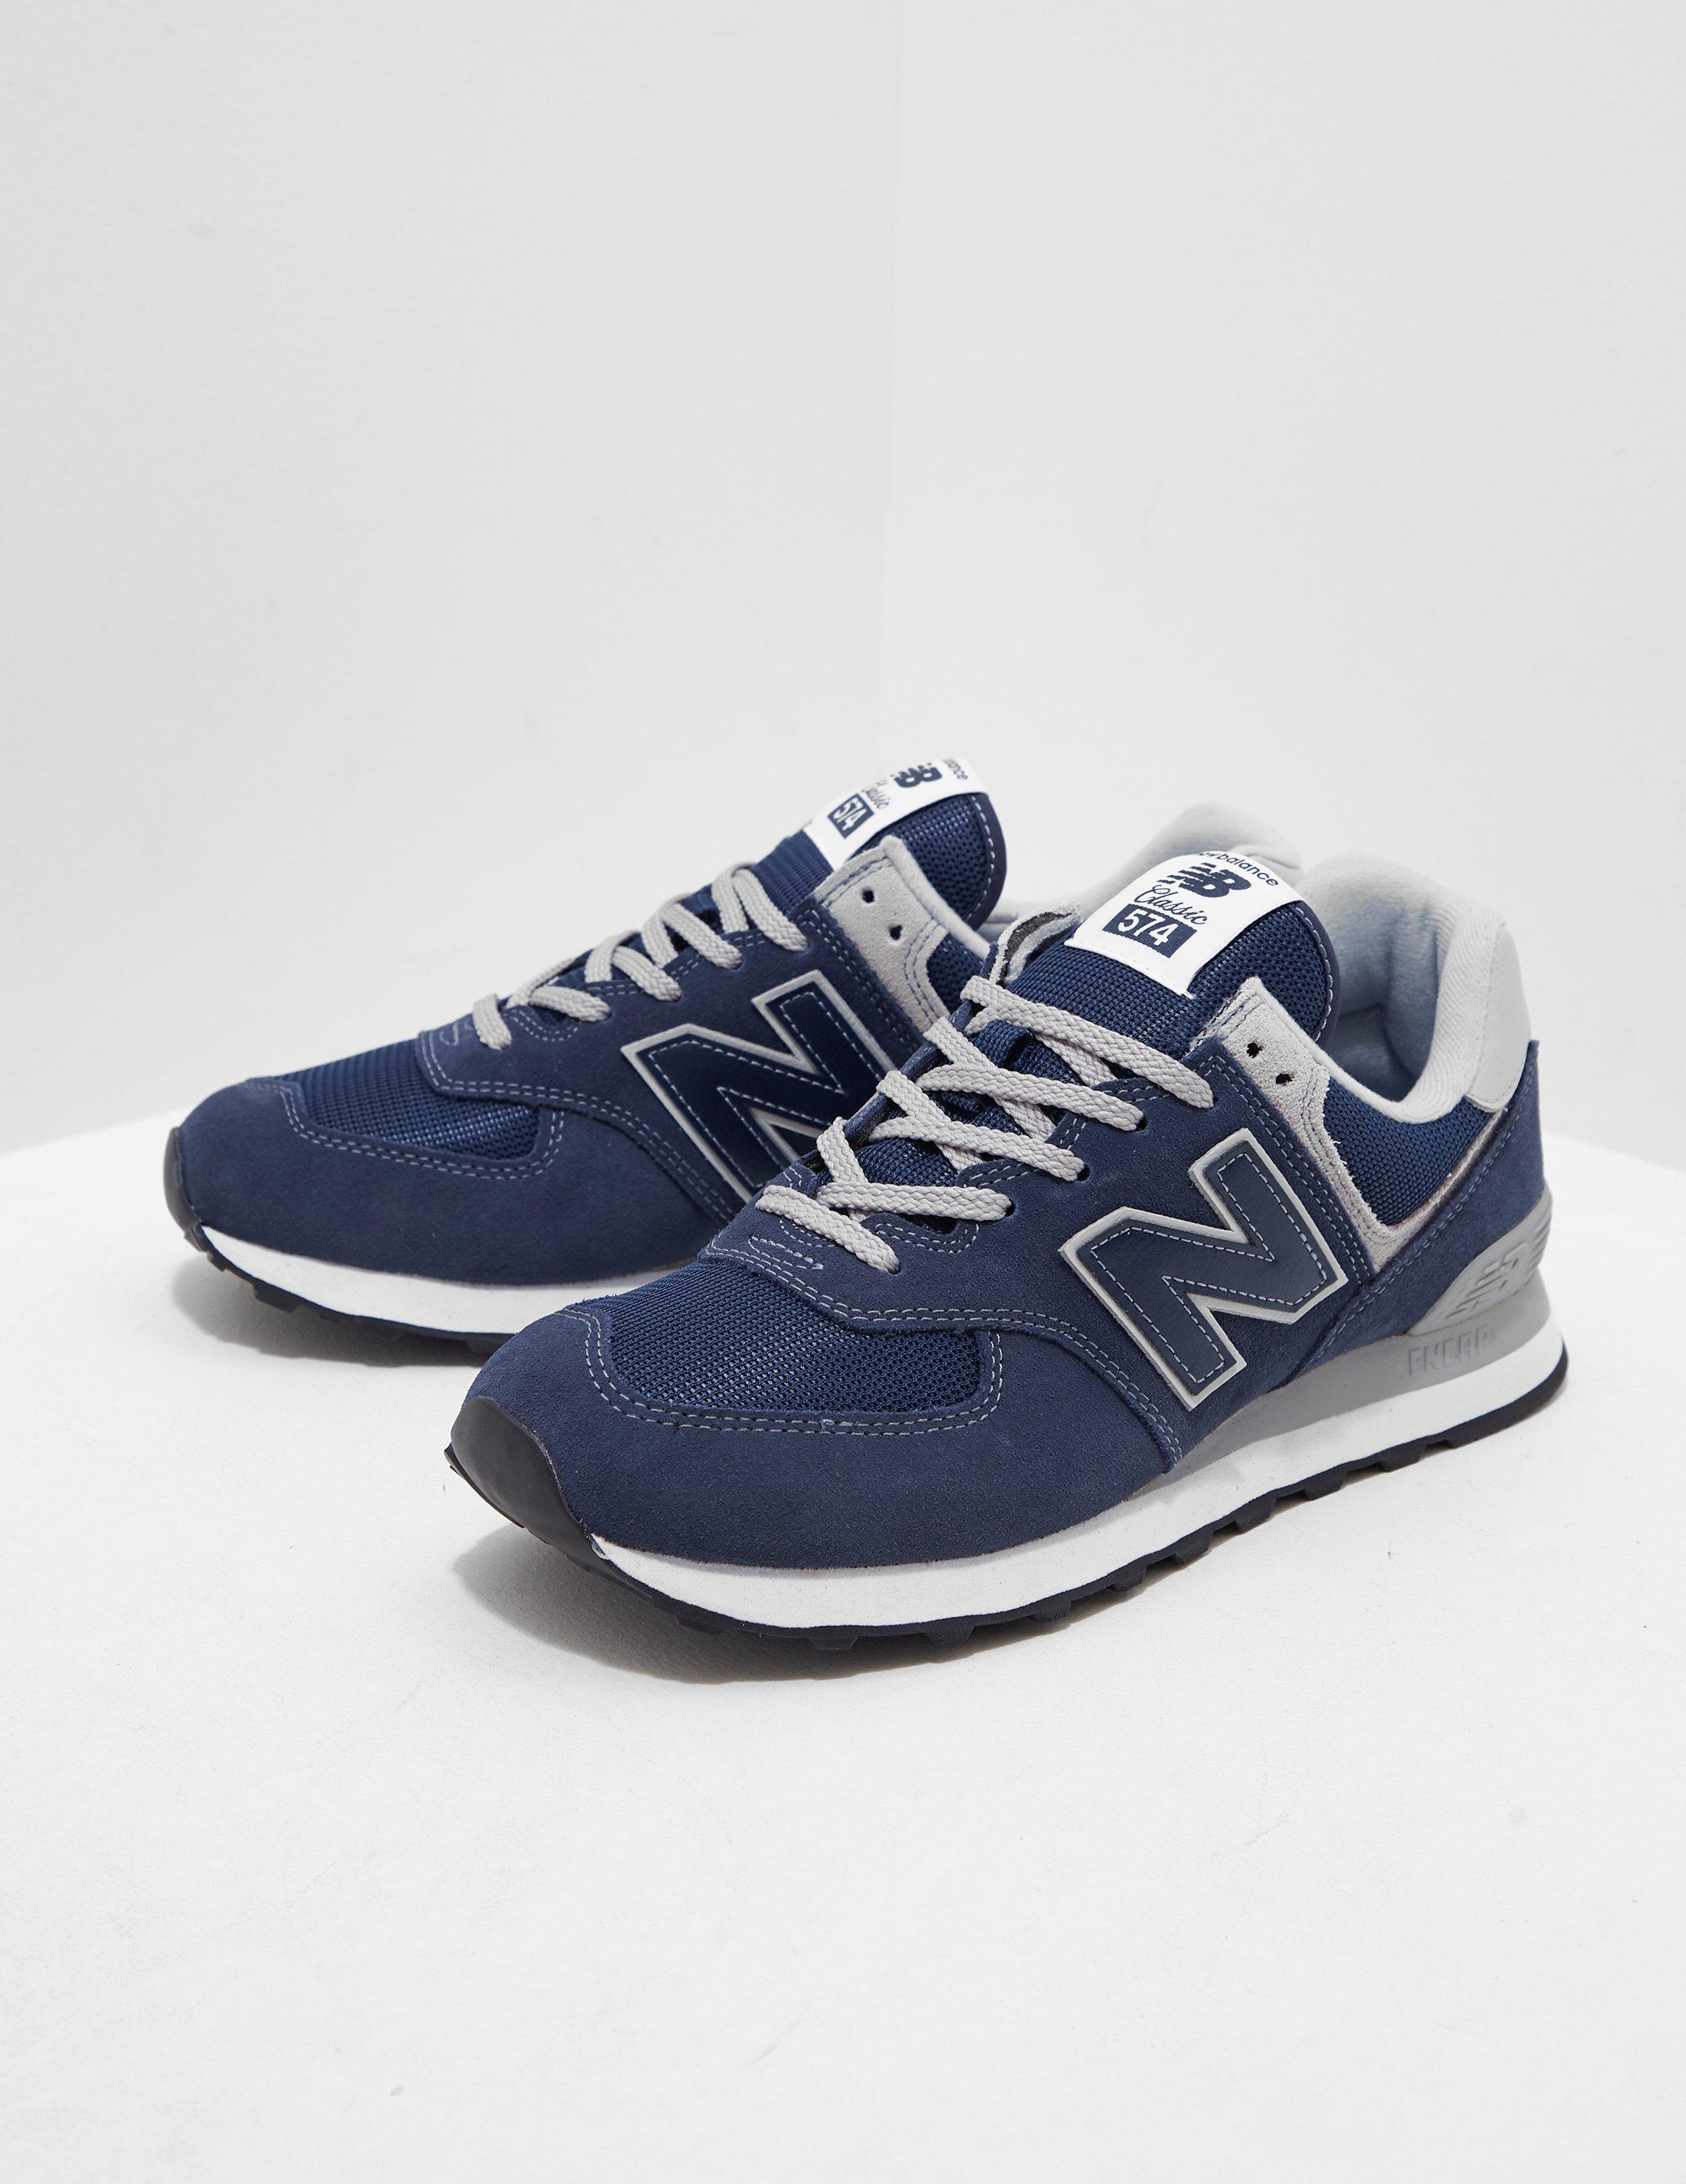 8485f6f9a0dae New Balance 574 Core Navy Shoes in Blue for Men - Lyst